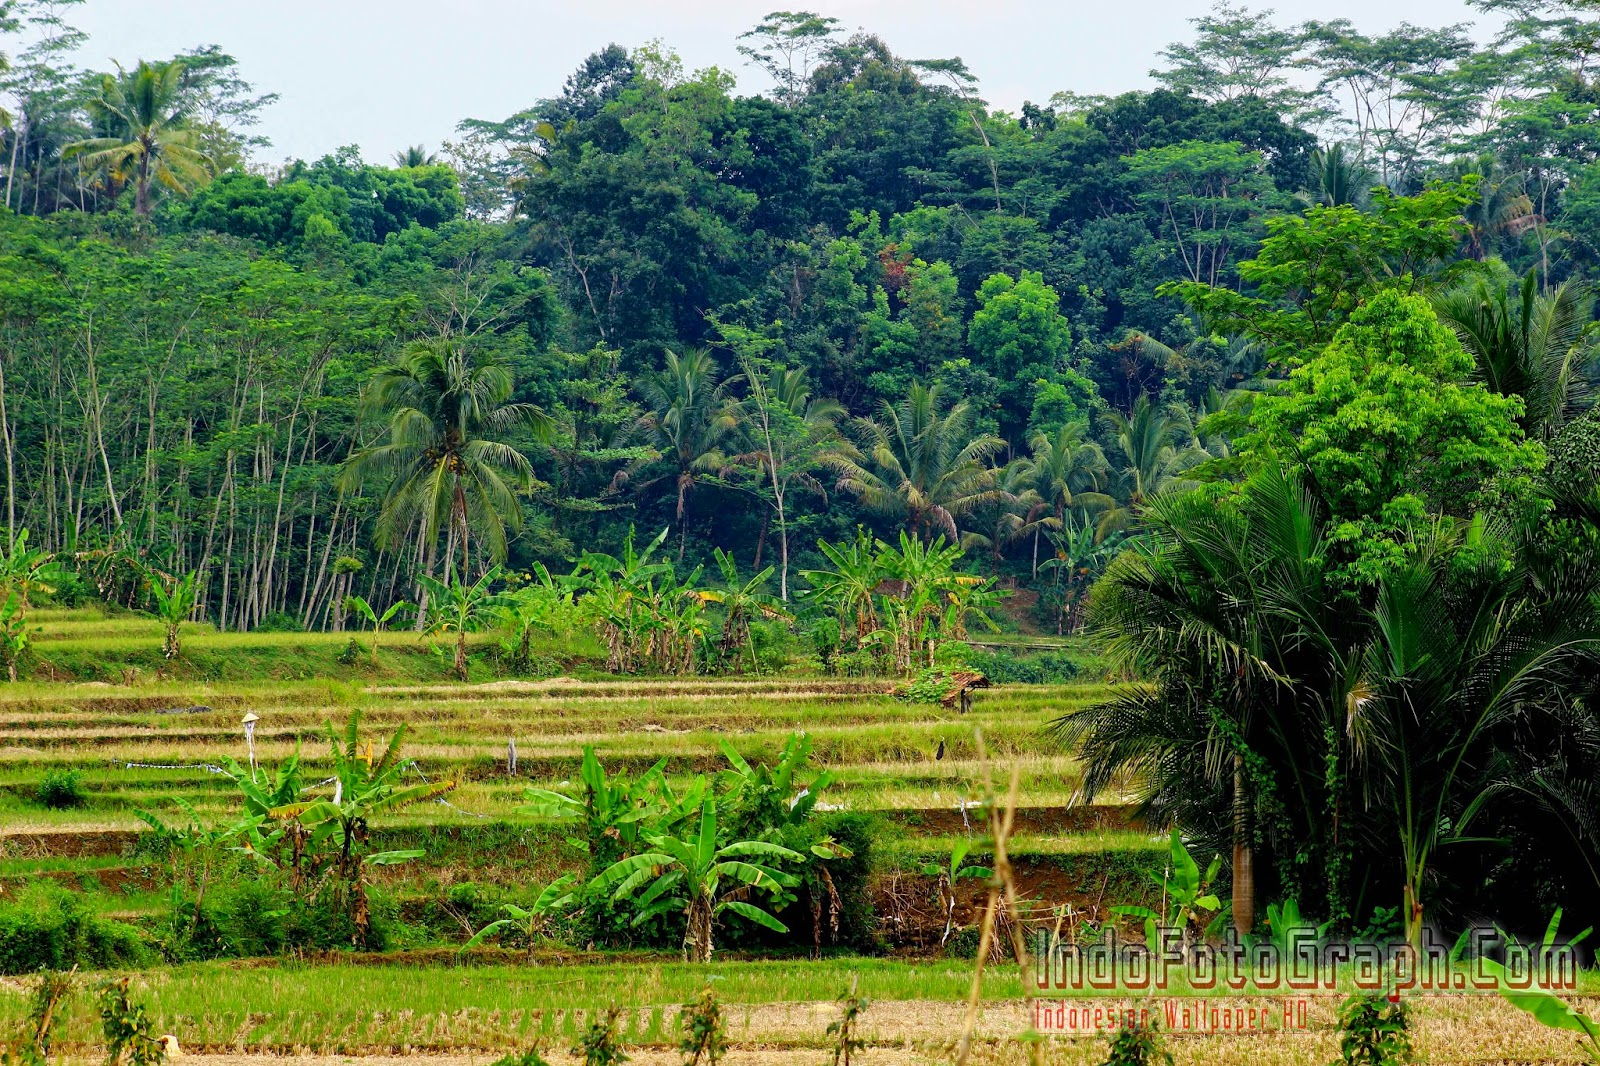 Download Wallpaper Pemandangan Alam Indonesia IndoFotographCom